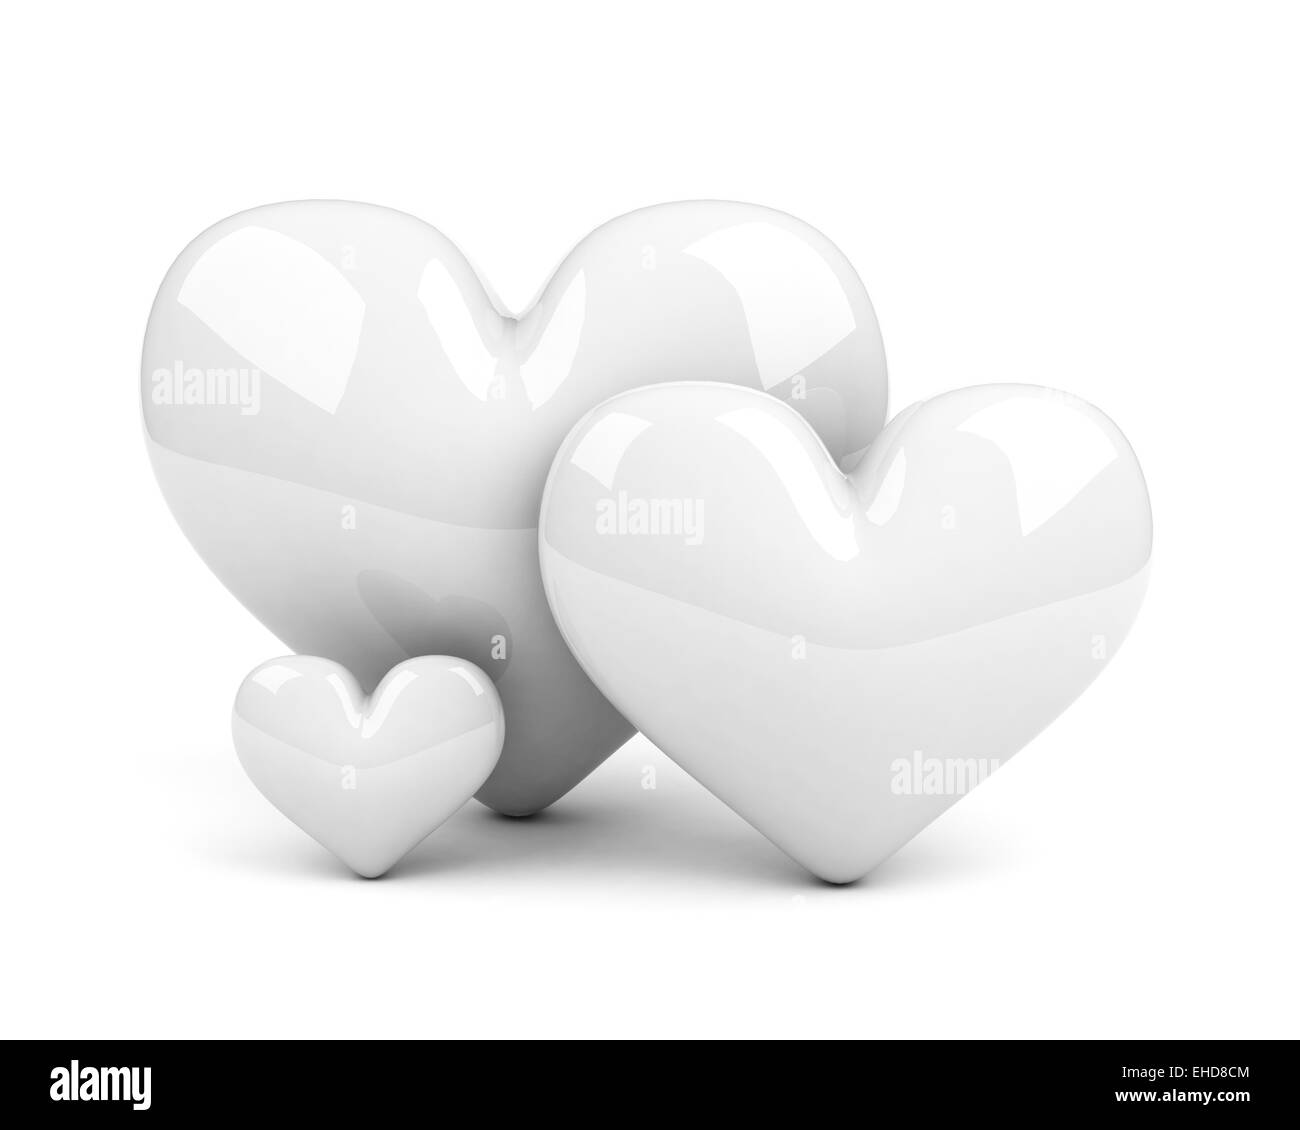 Family Symbol Black And White Stock Photos Images Alamy